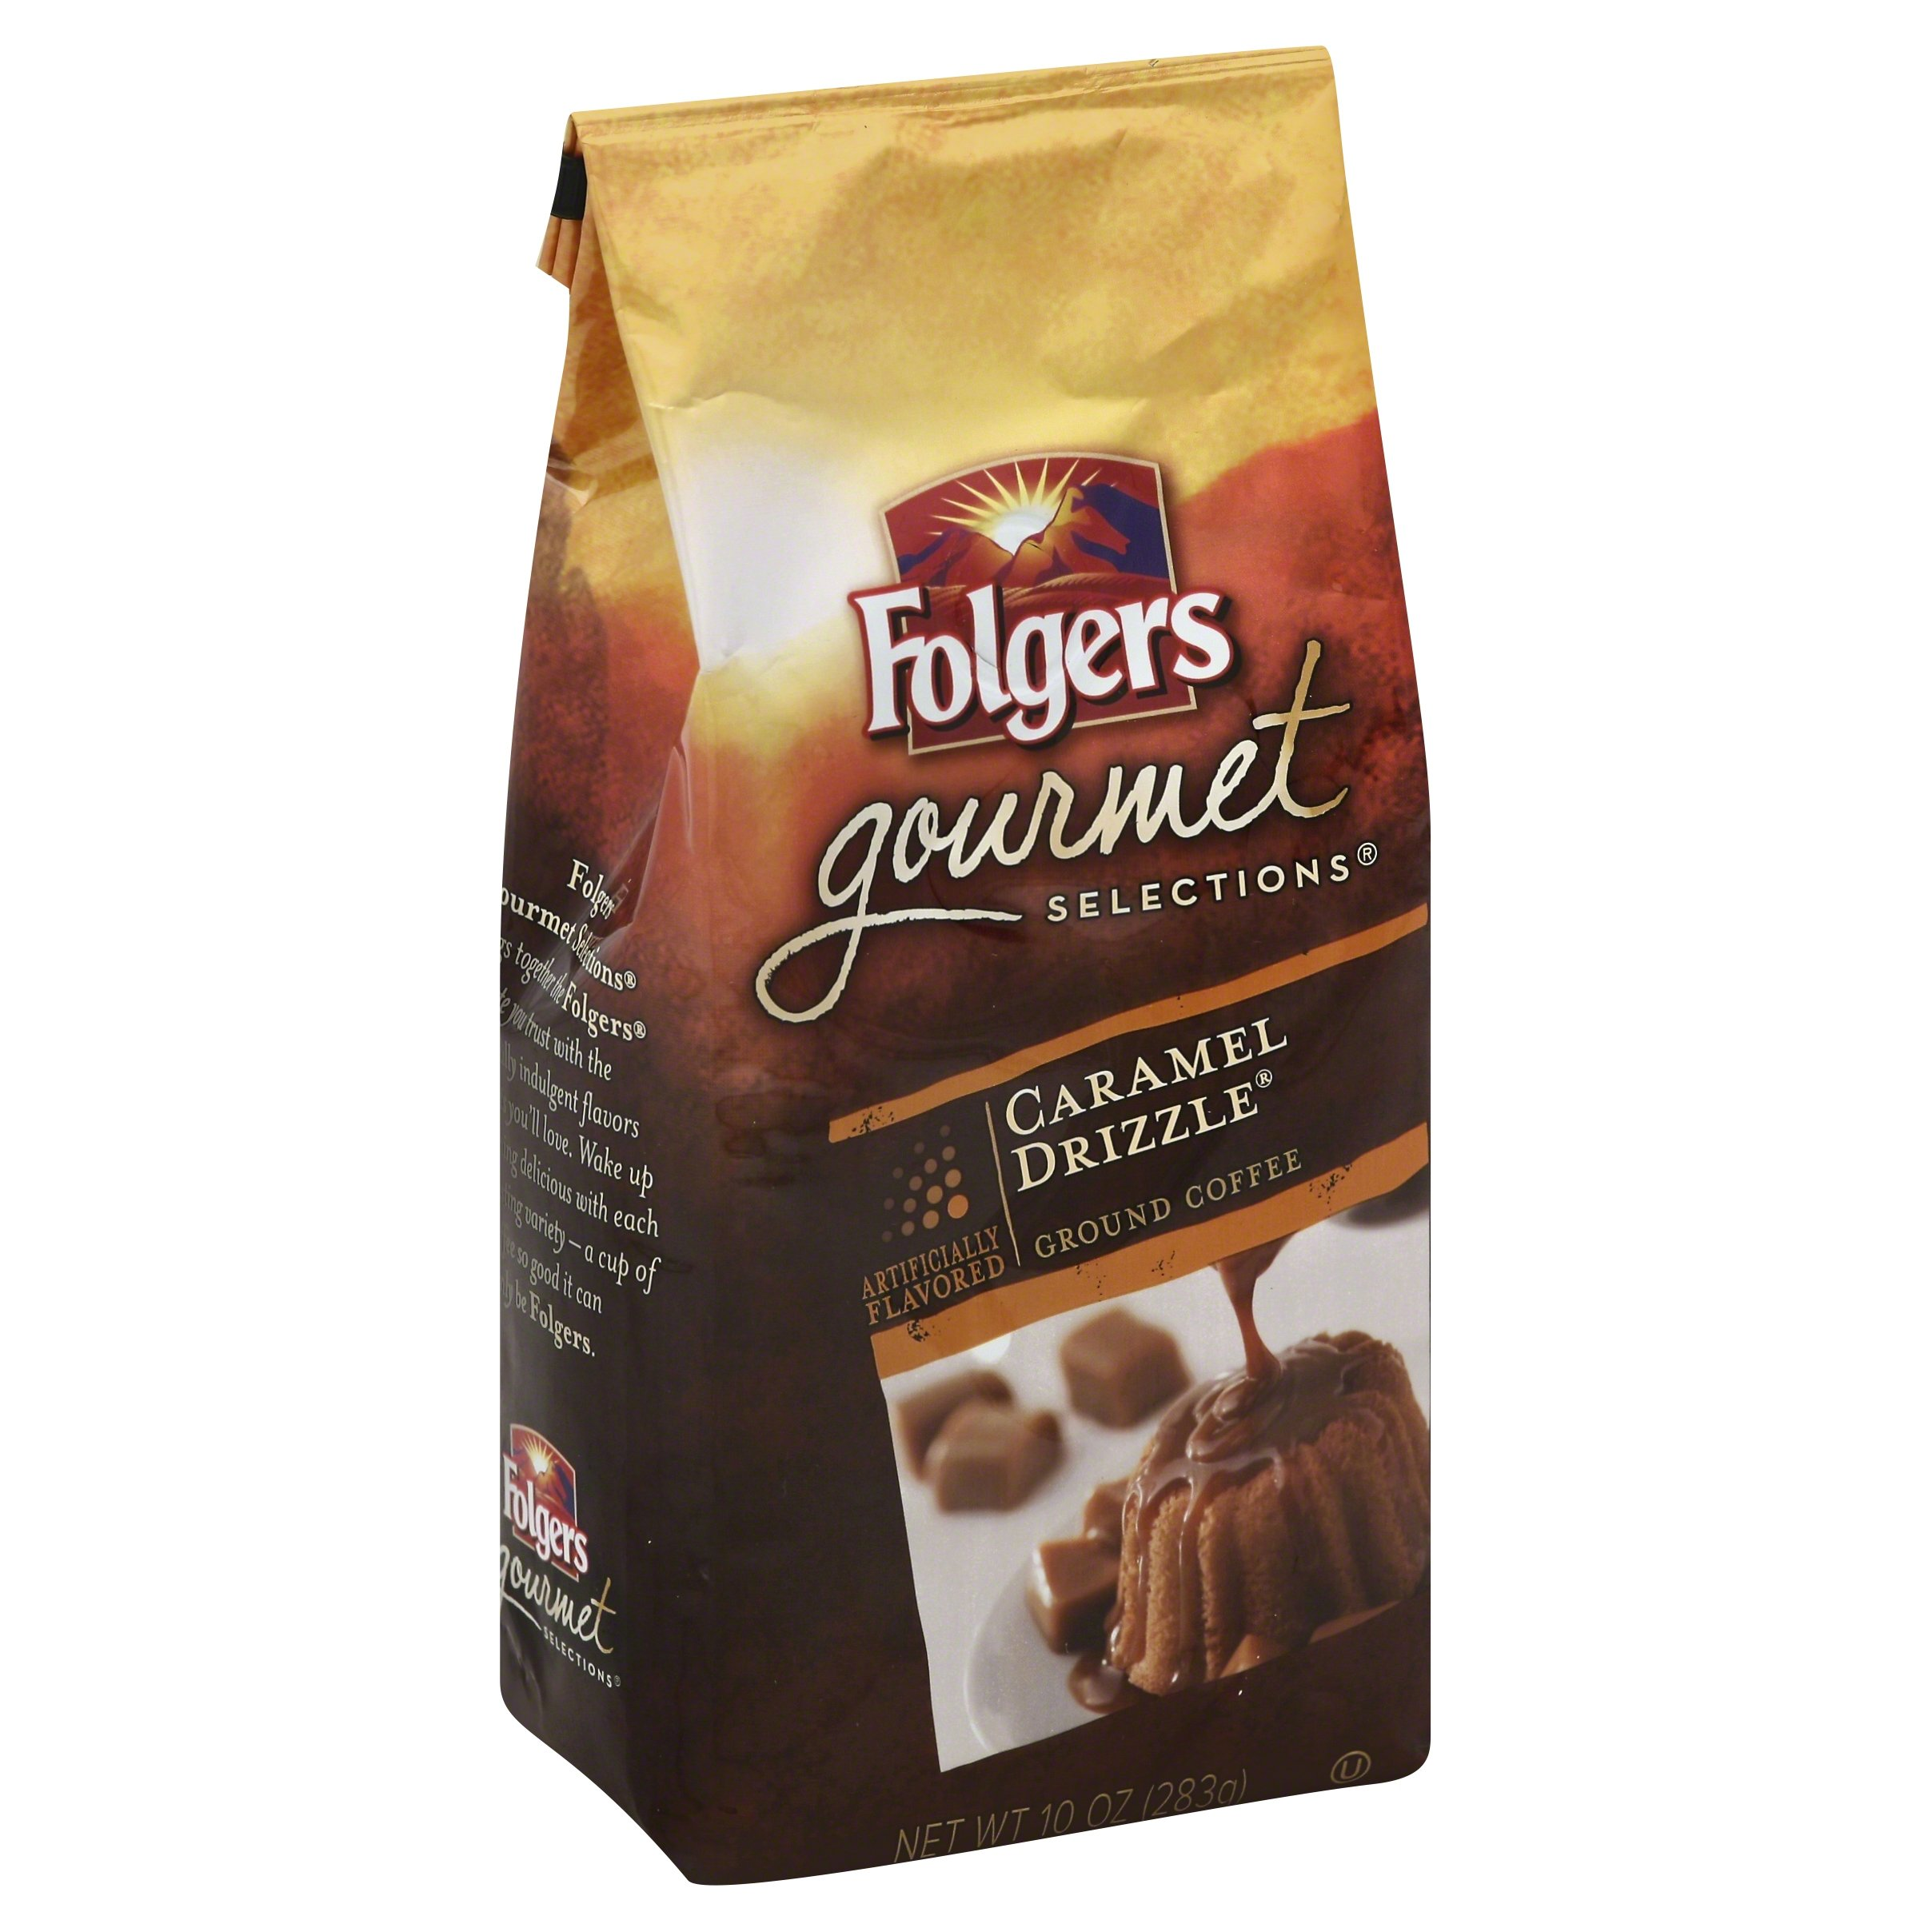 Folgers Caramel Drizzle Flavored Ground Coffee, 10 Ounce